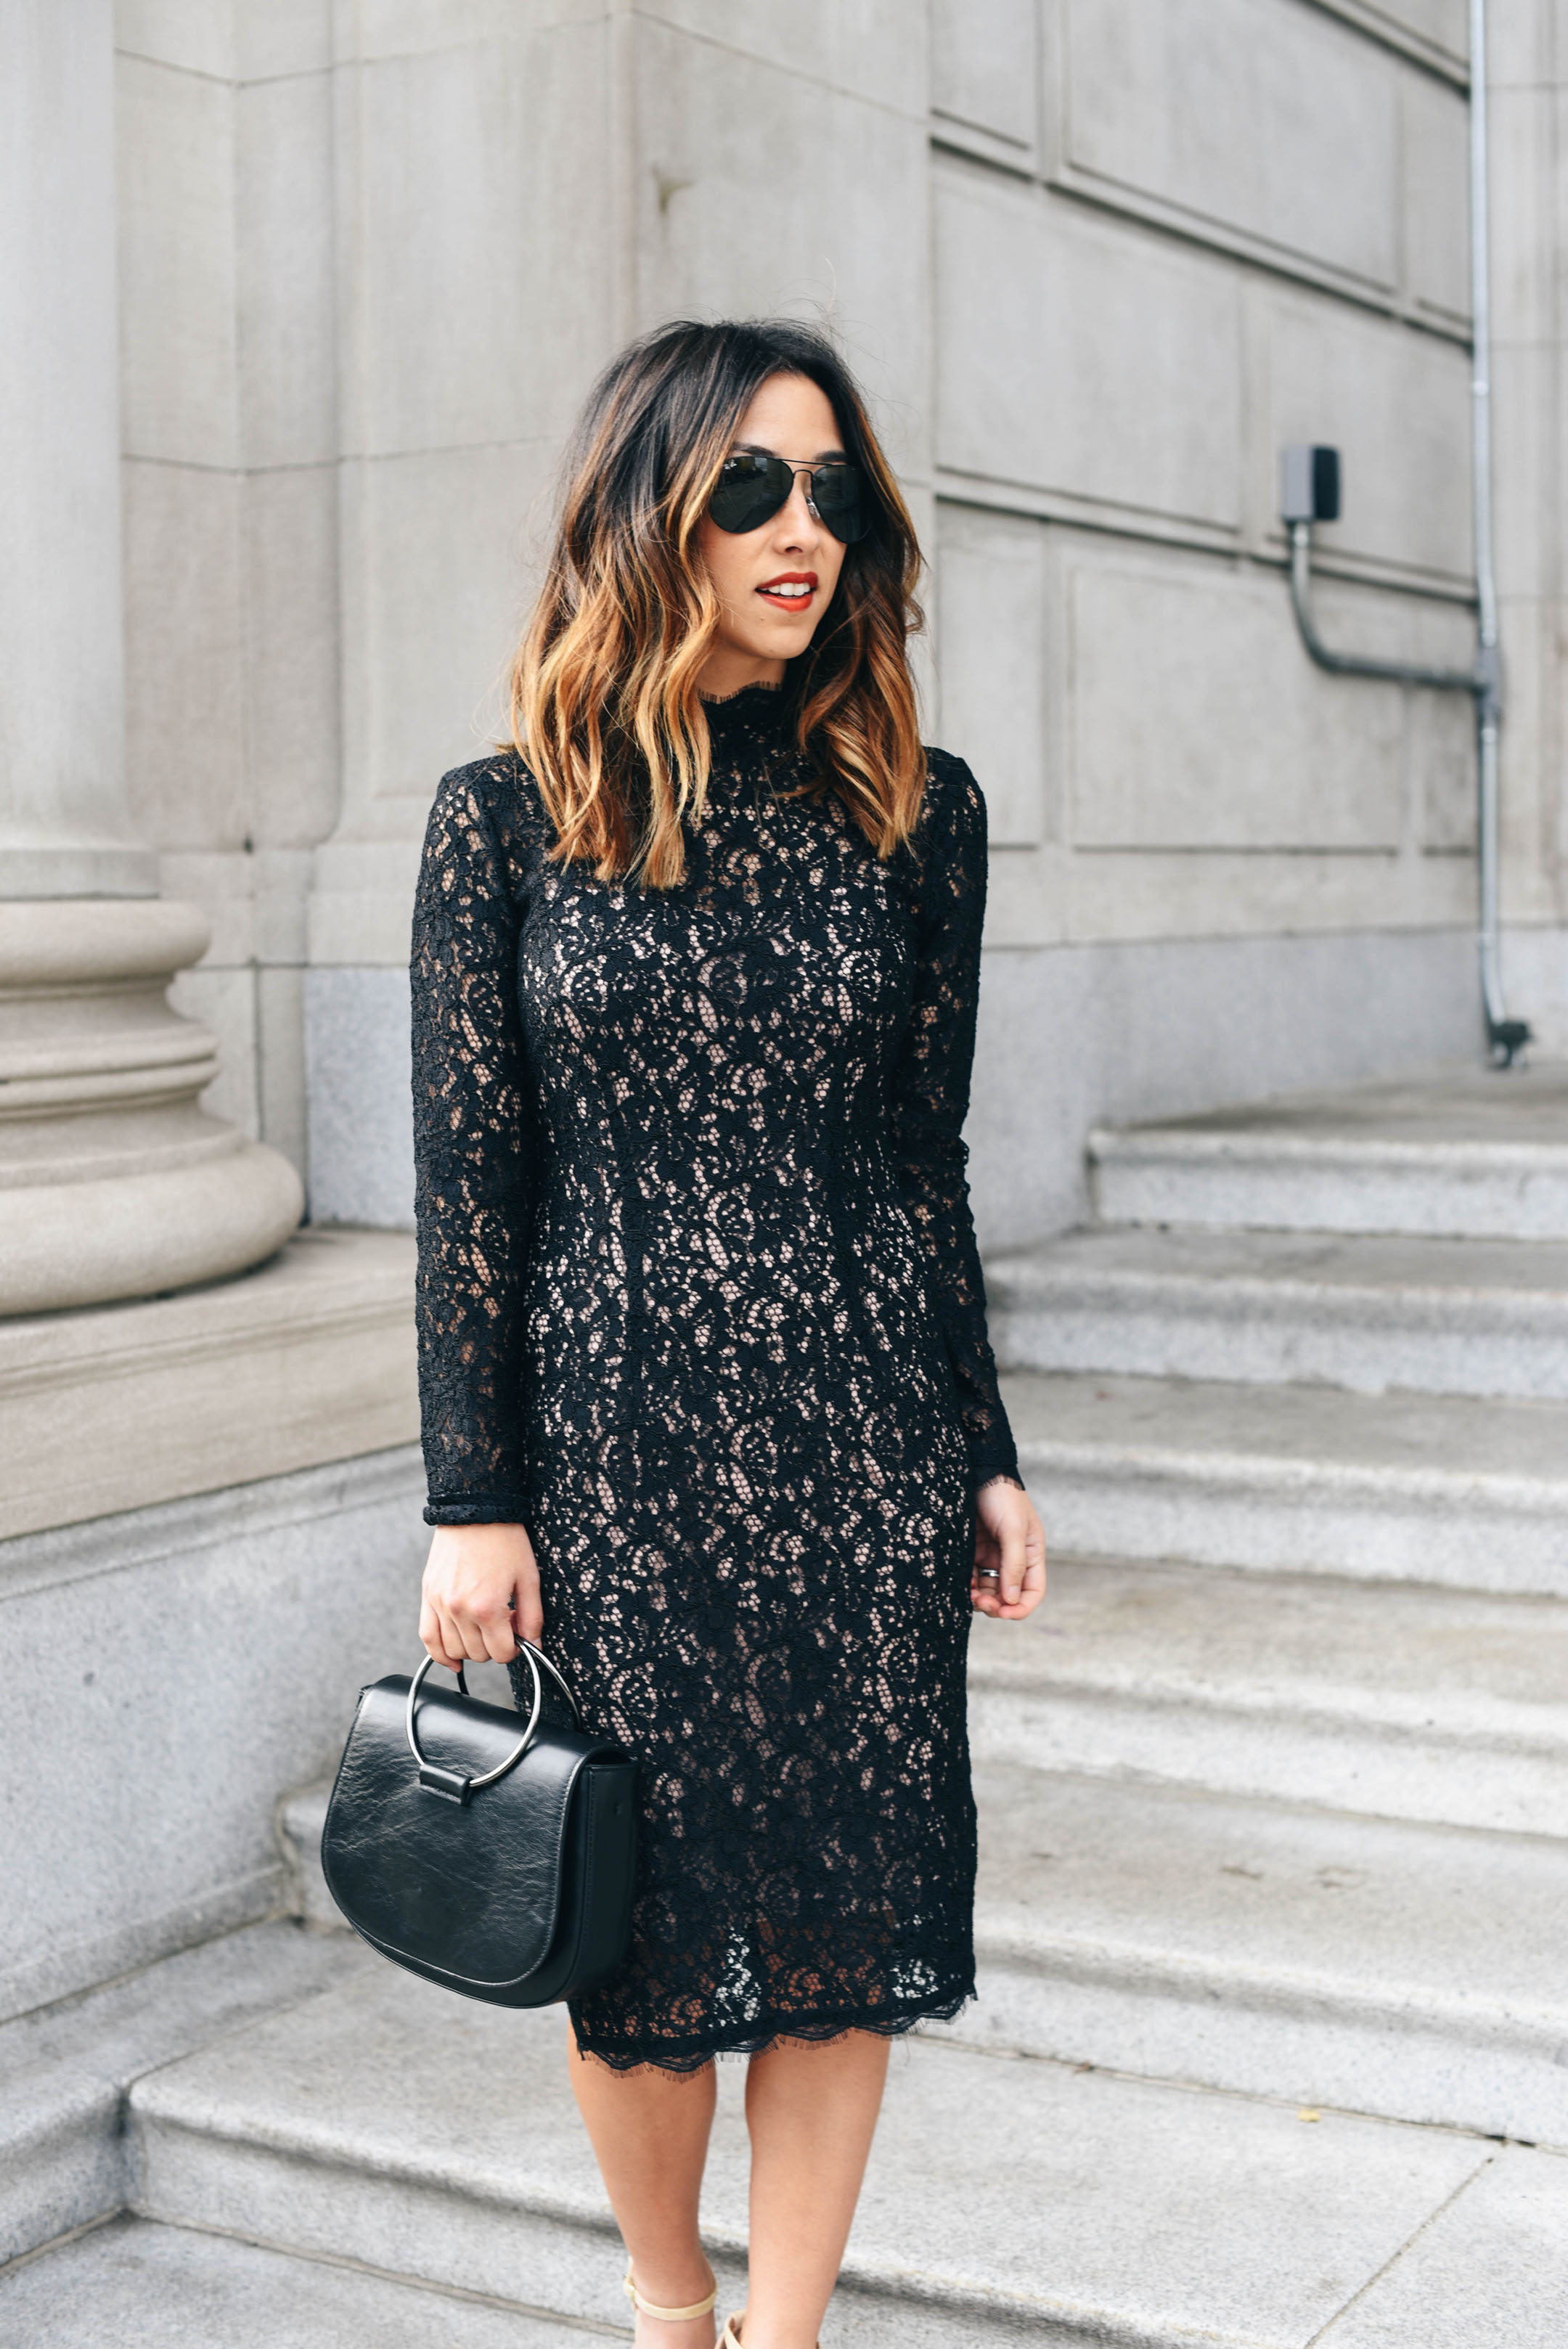 crystalin-marie-wearing-black-lace-sheath-adrianna-papell-dress